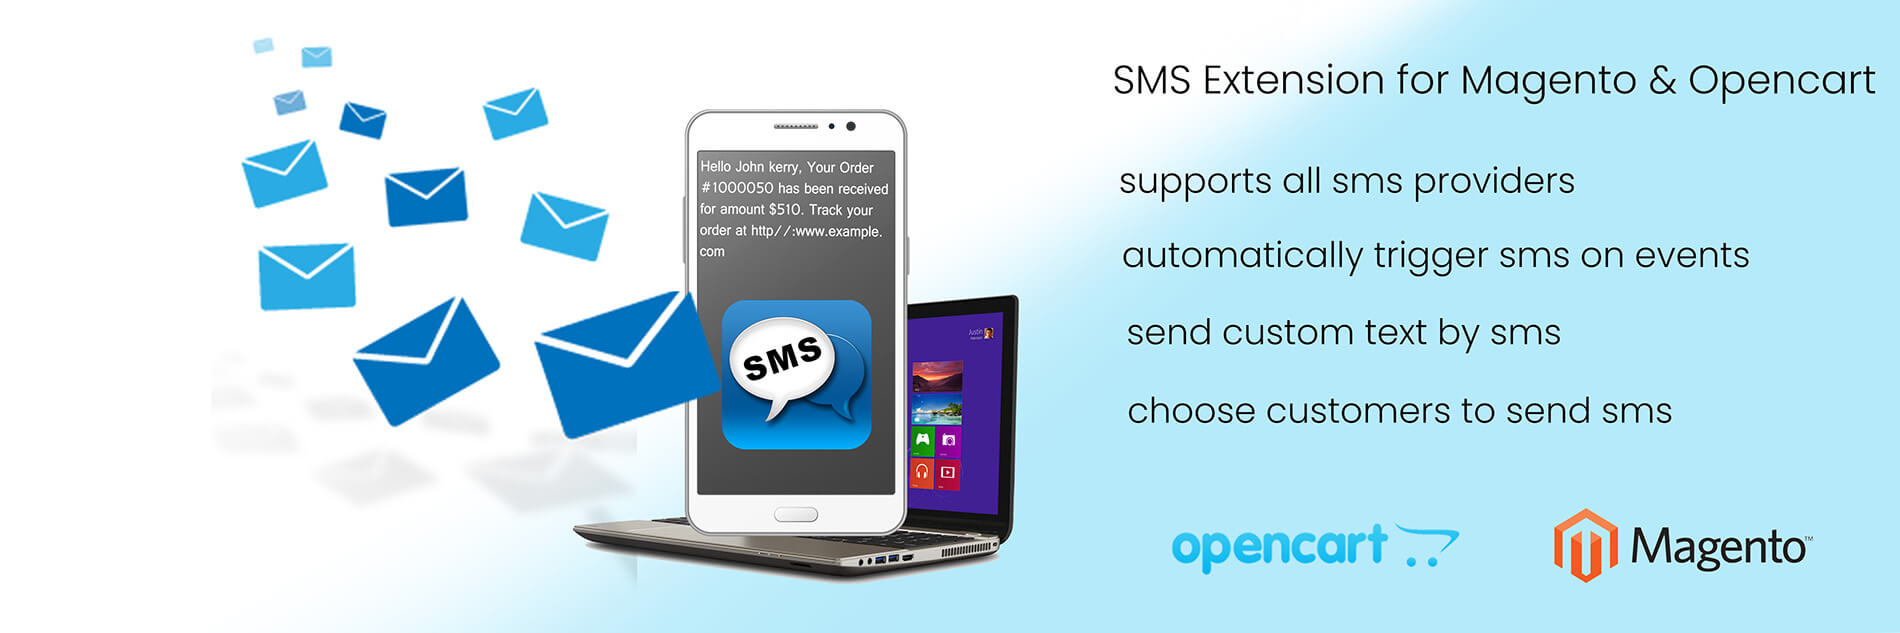 sms extension for opencart and magento